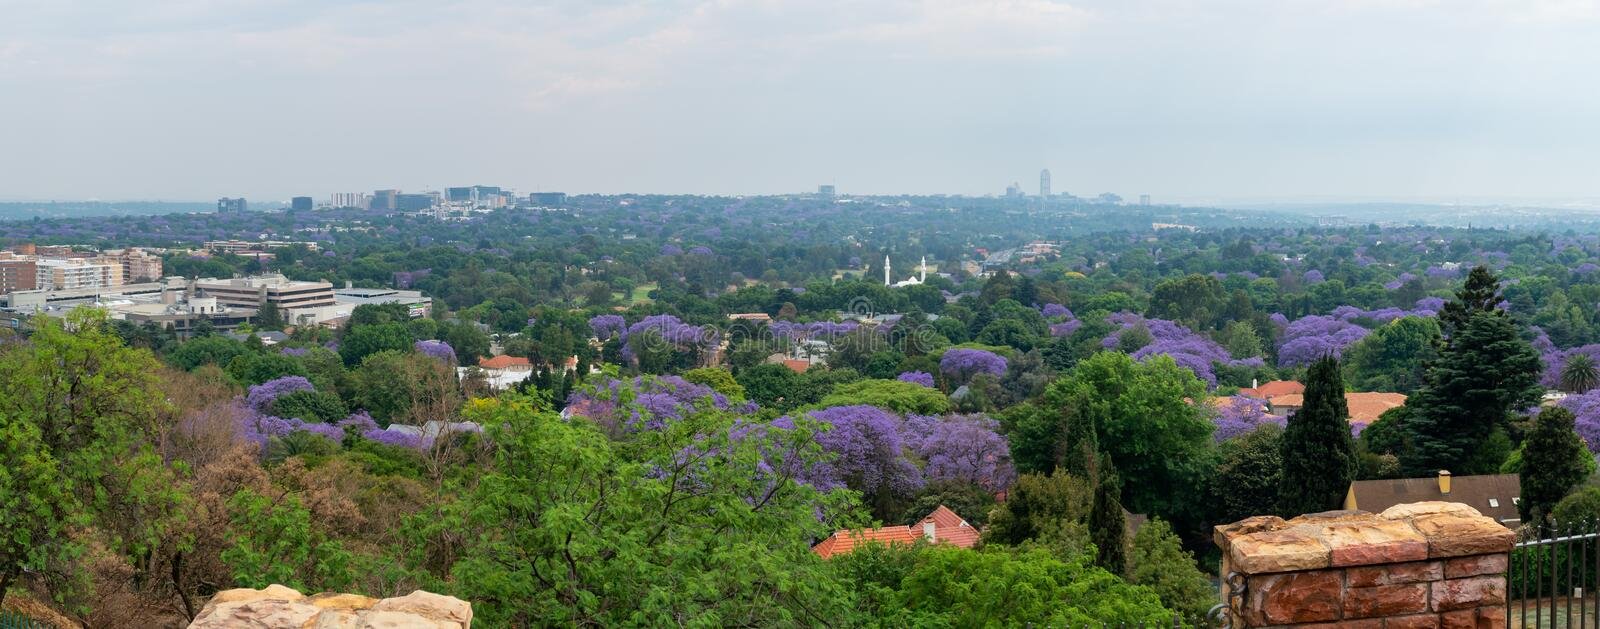 Aerial view of Johannesburg with green parks and Jacaranda trees, South Africa royalty free stock images